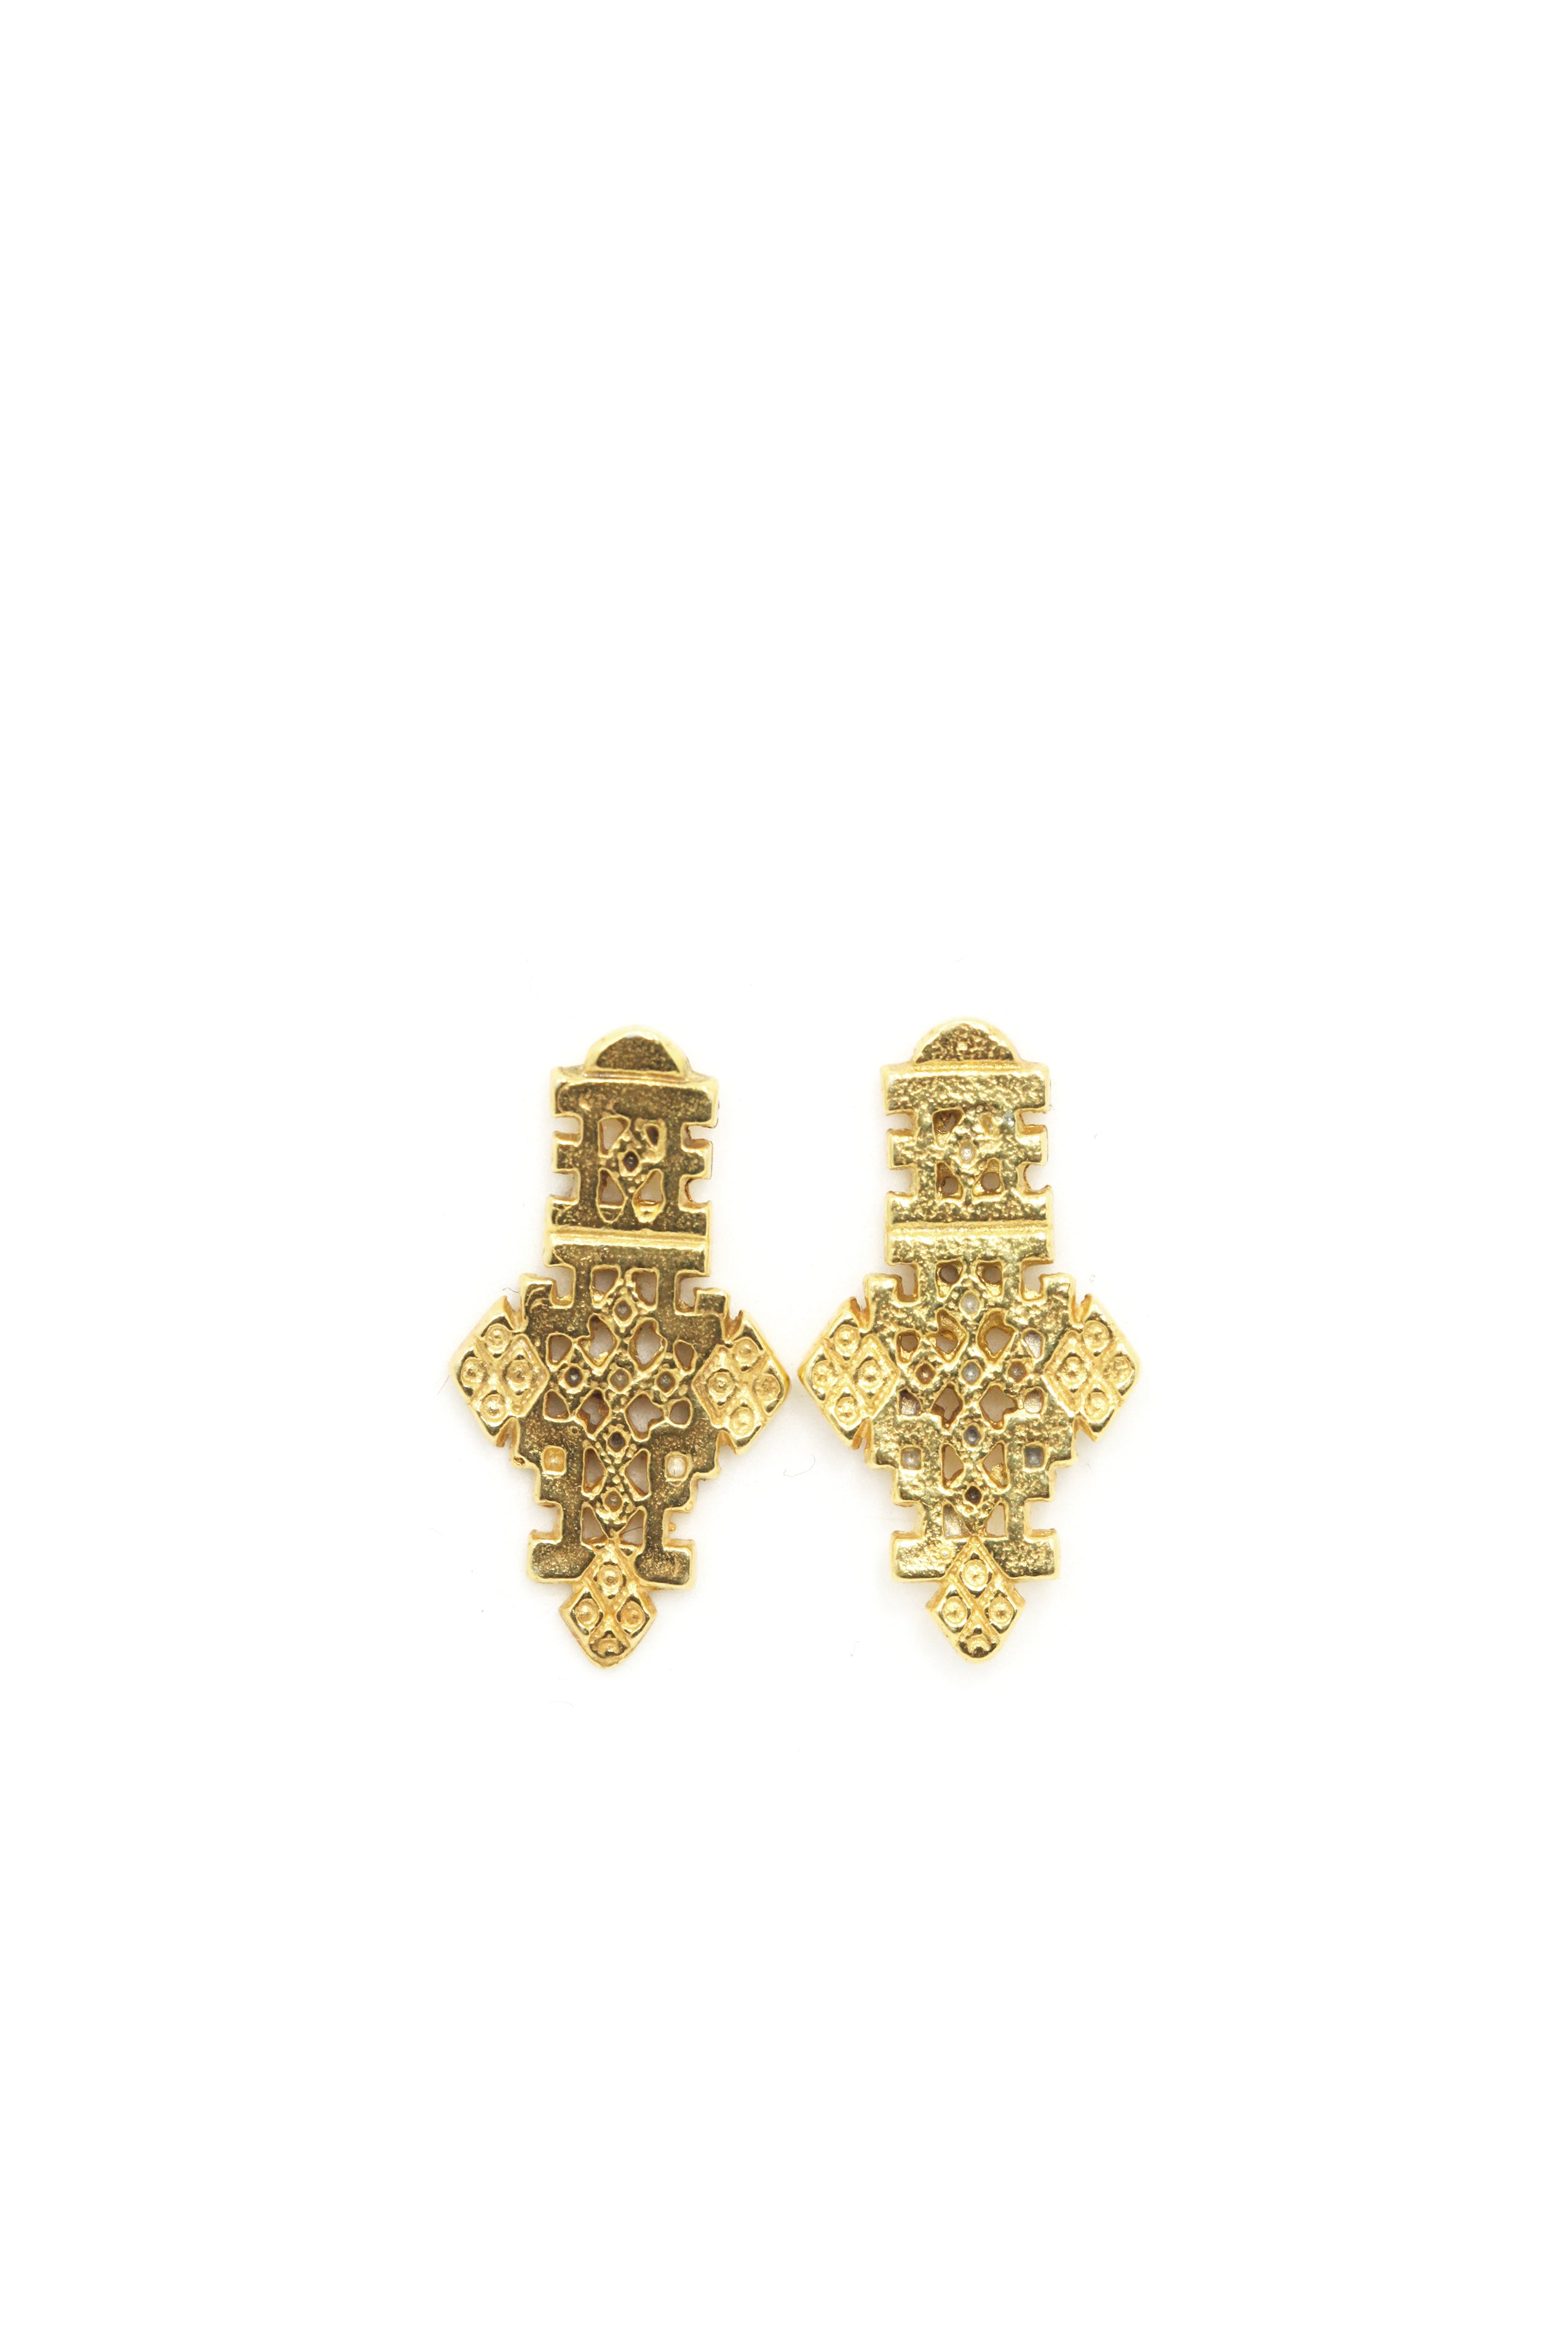 THE ETHIOPIAN Coptic Cross Stud Earrings Sterling Silver